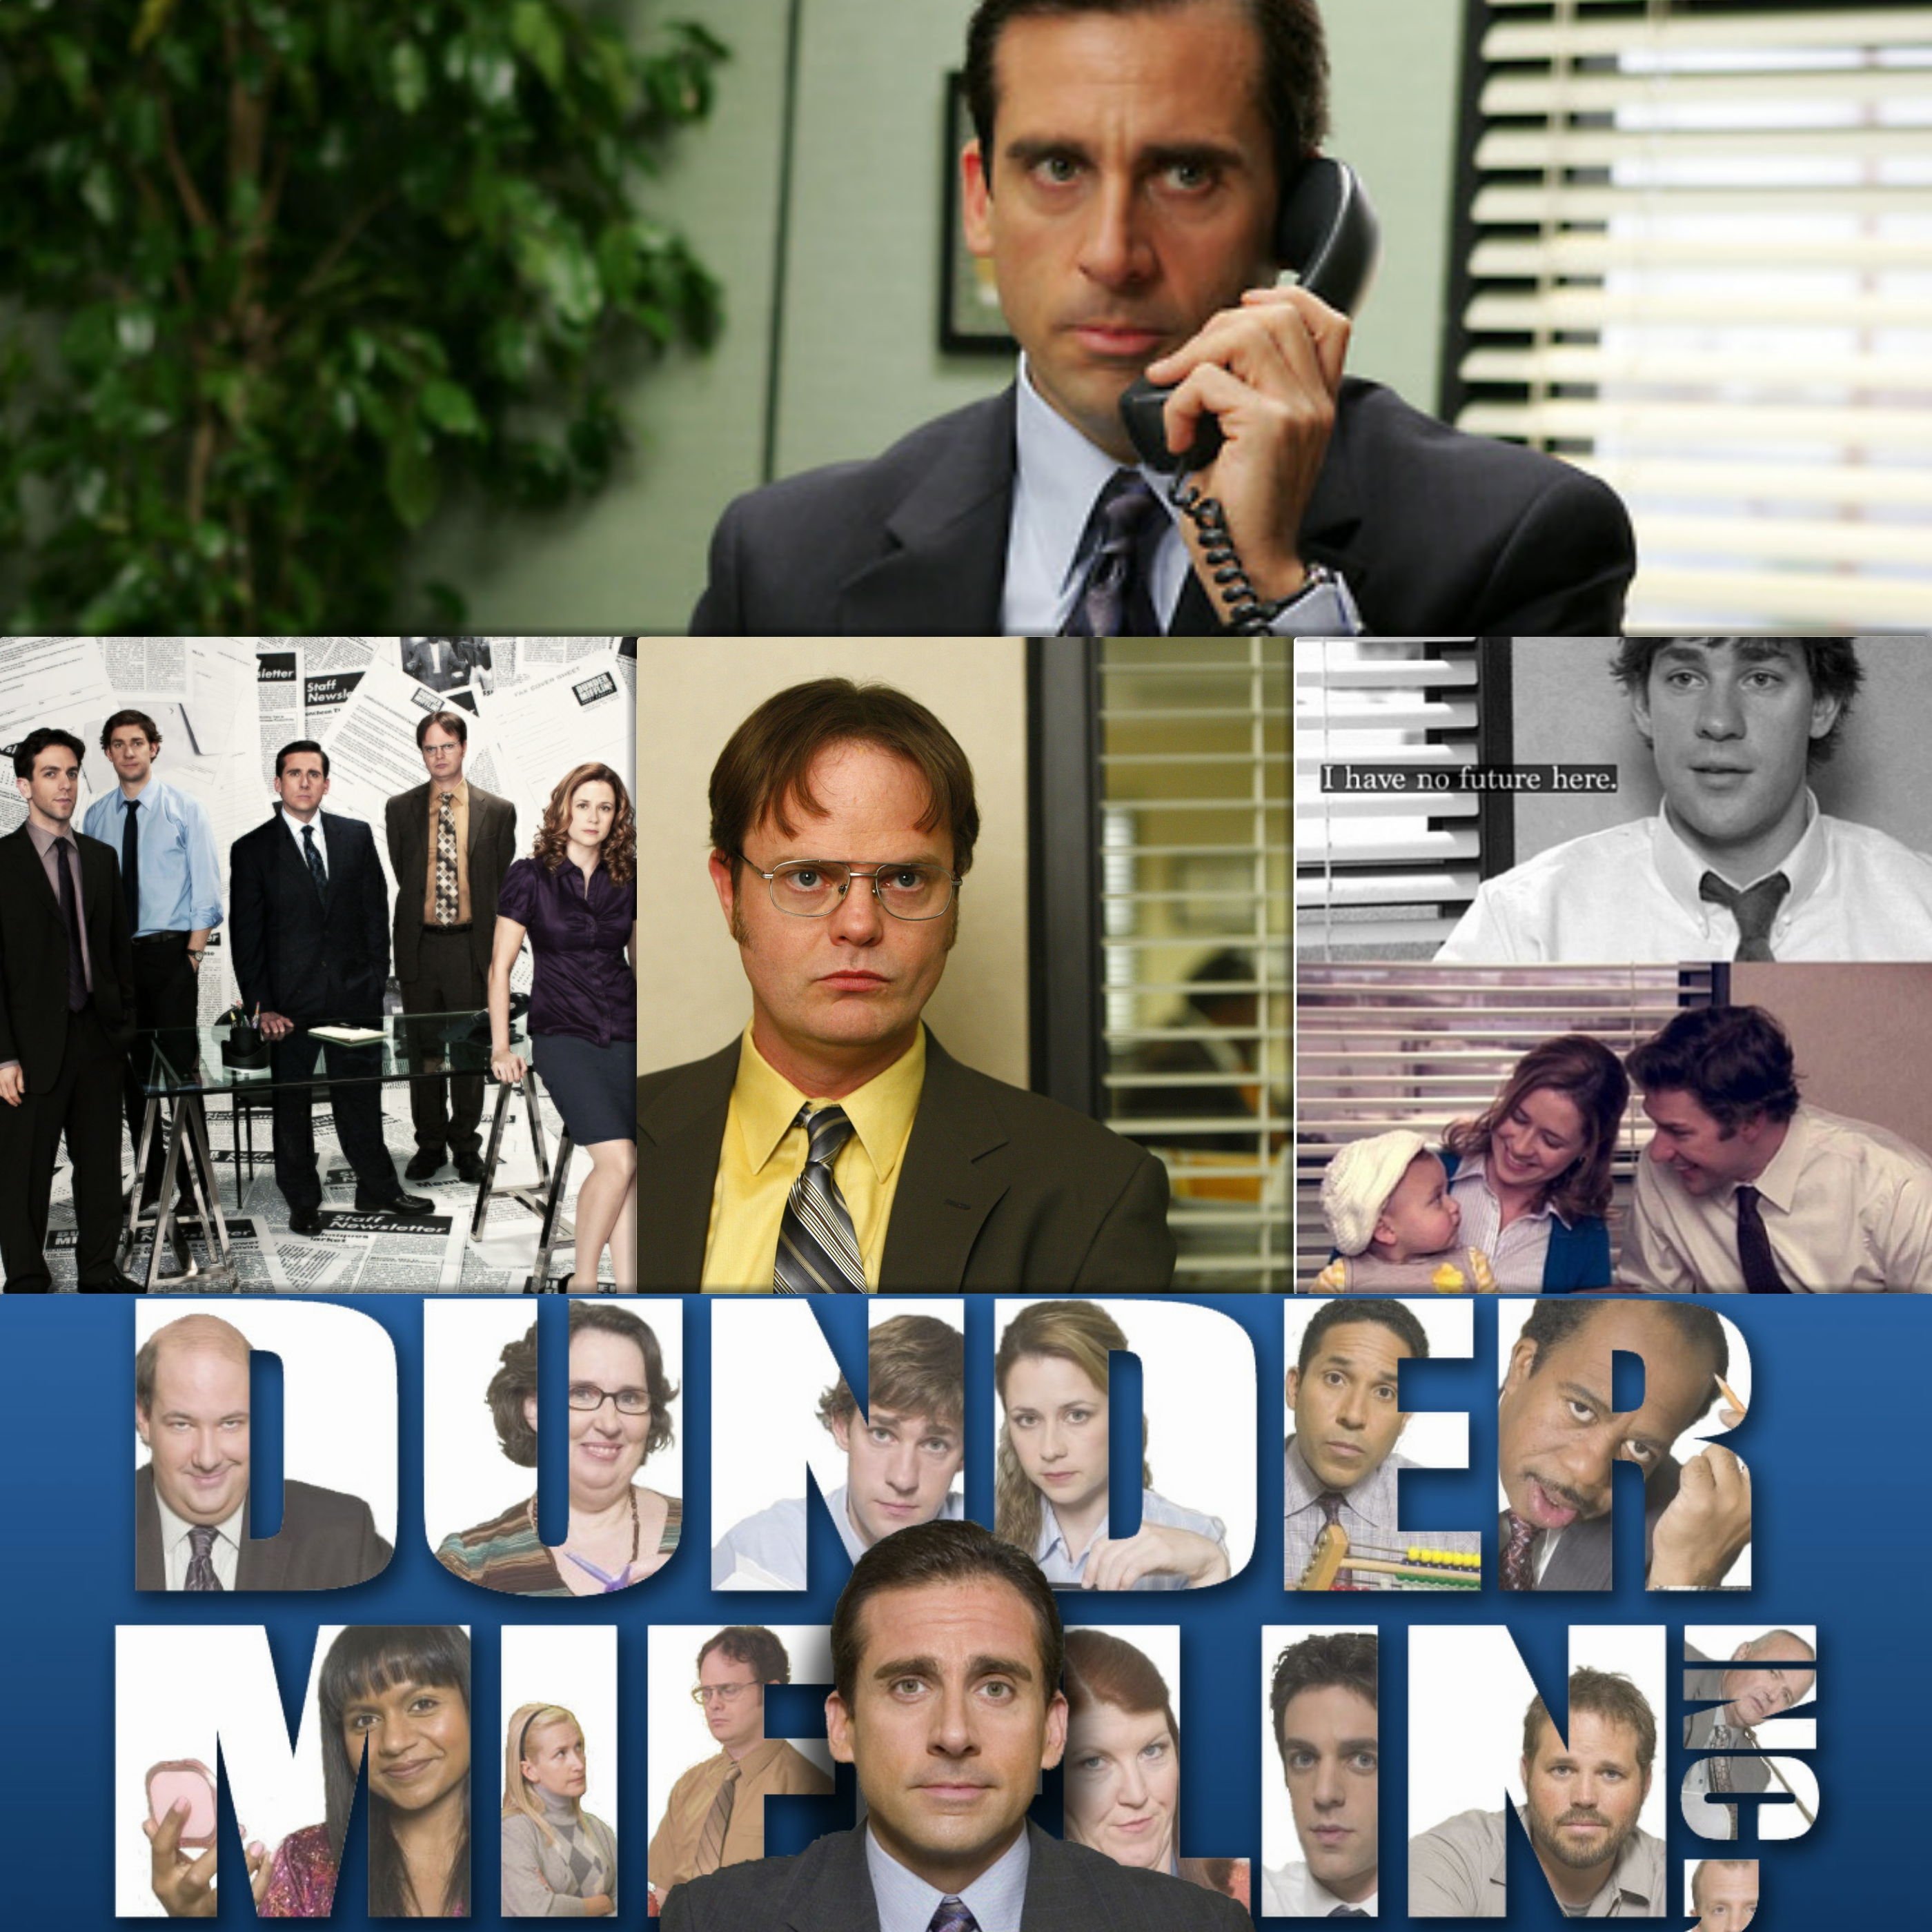 the office nbc 324594_1280_1024_fotor_collage tumblr_mkf0wwbmlr1rd3tx8o1_500